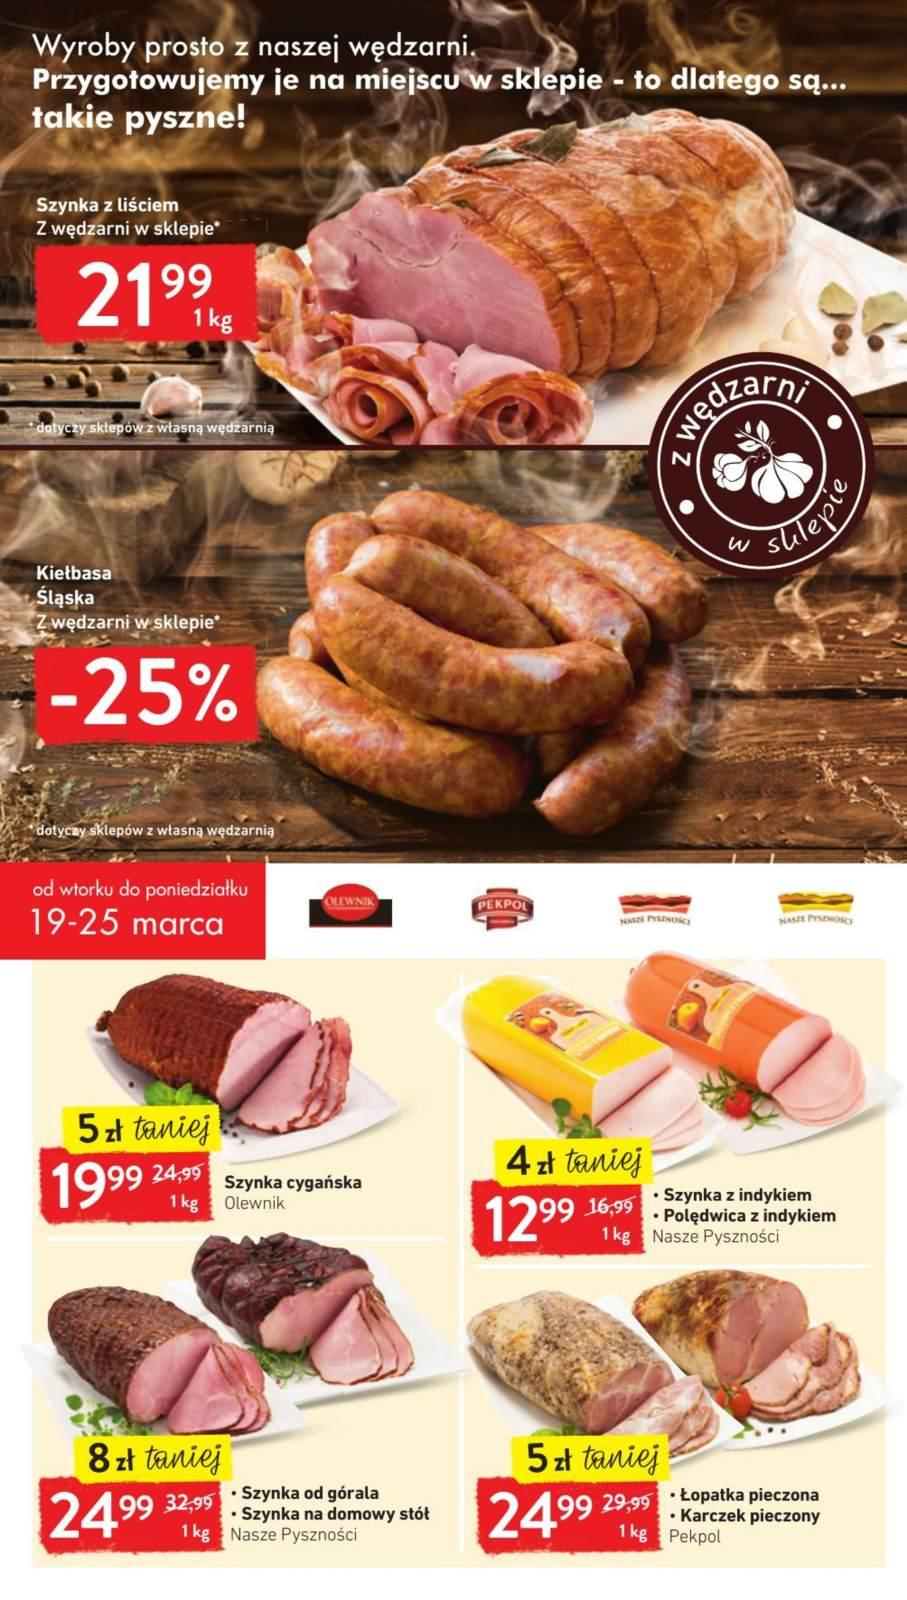 Gazetka promocyjna Intermarche do 25/03/2019 str.7